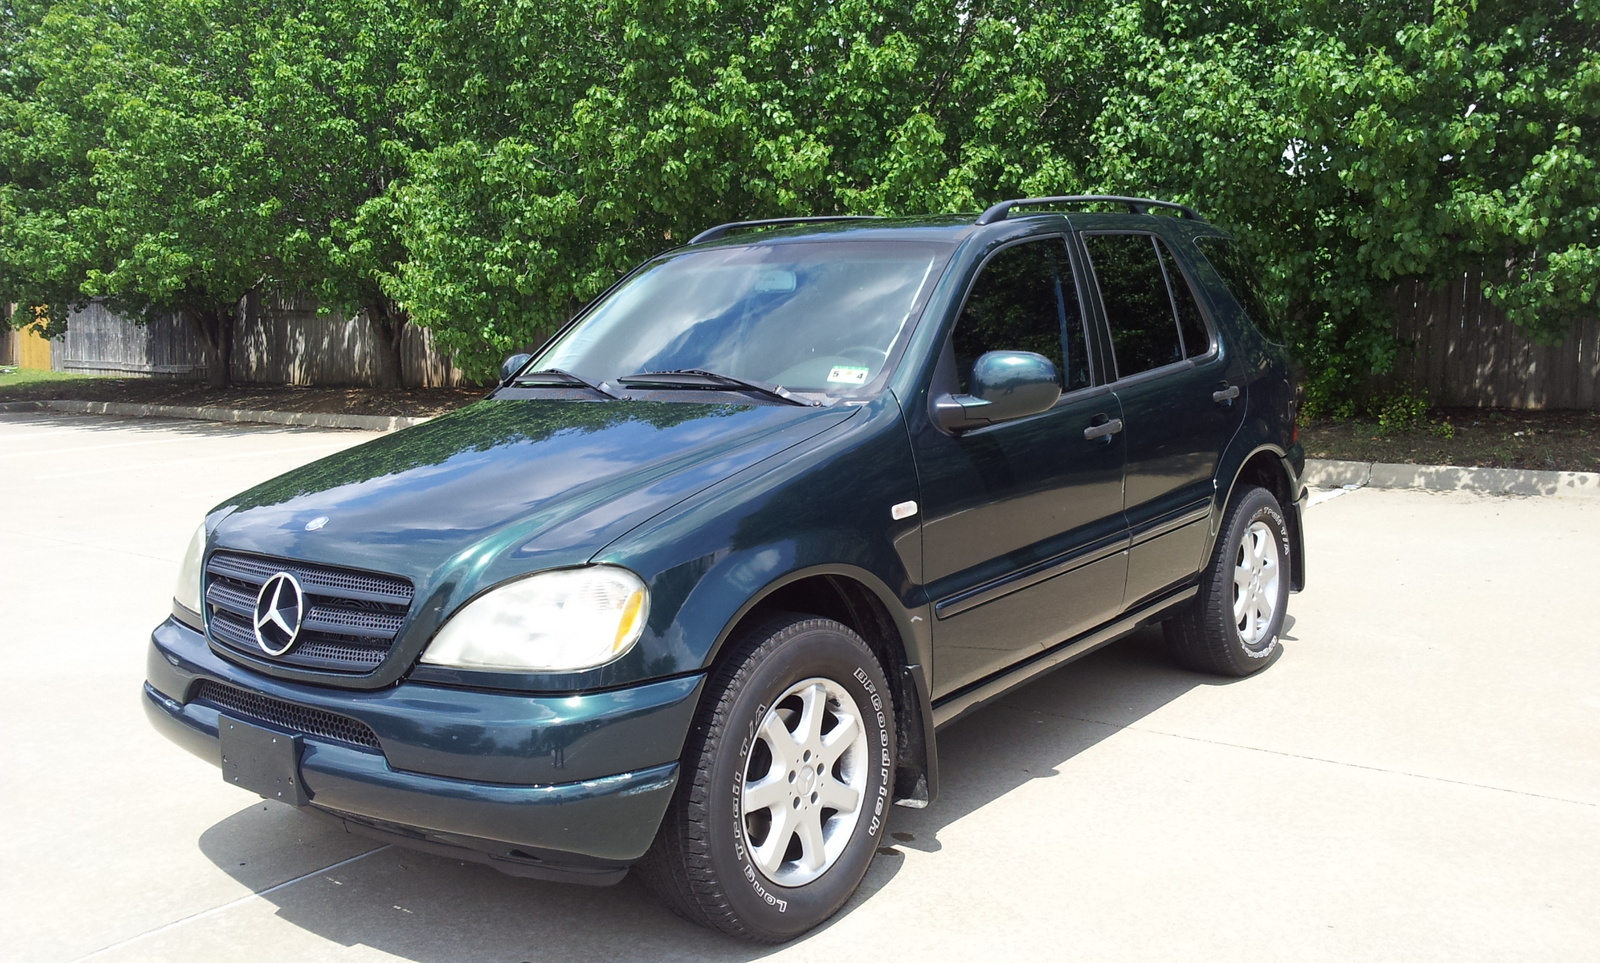 2000 mercedes benz m class pictures cargurus for Mercedes benz ml320 2001